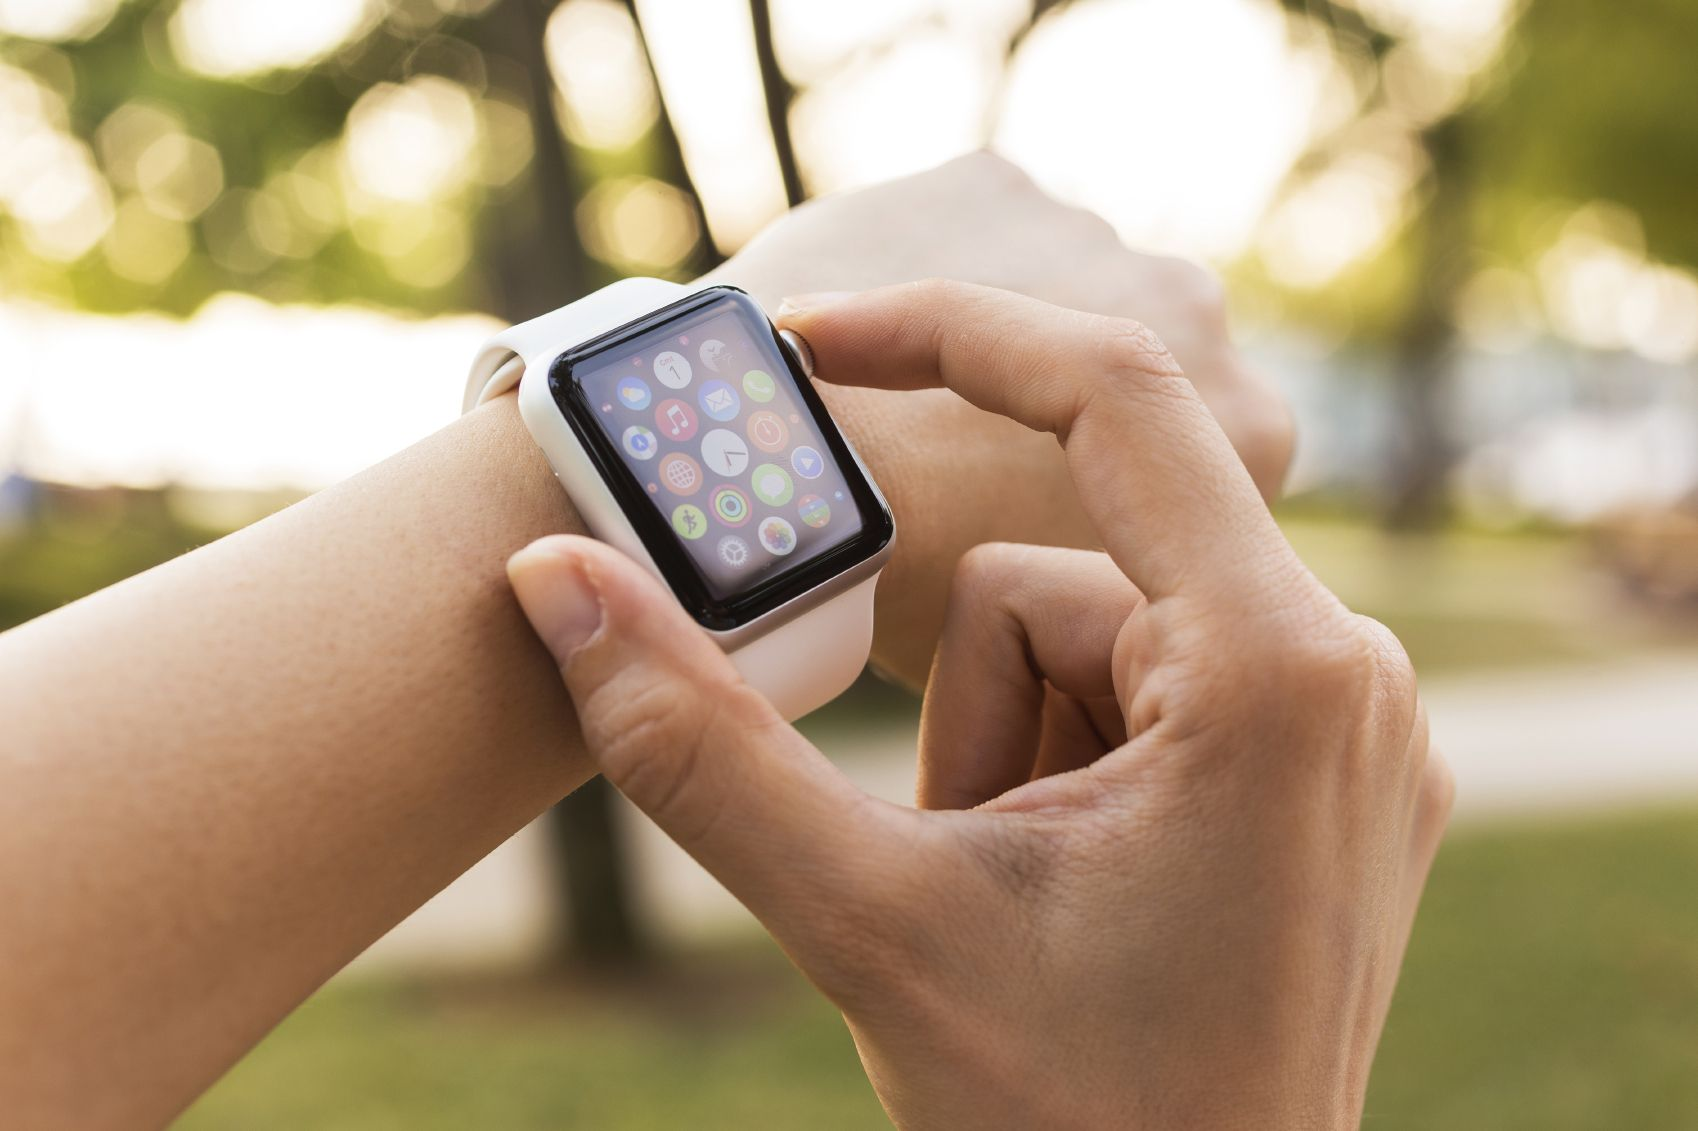 Companies are beginning to reward healthy employees. One offers a $25 Apple Watch to those who meet exercise goals for two years.  http://www.cbsnews.com/news/25-apple-watch-comes-with-a-major-catch/